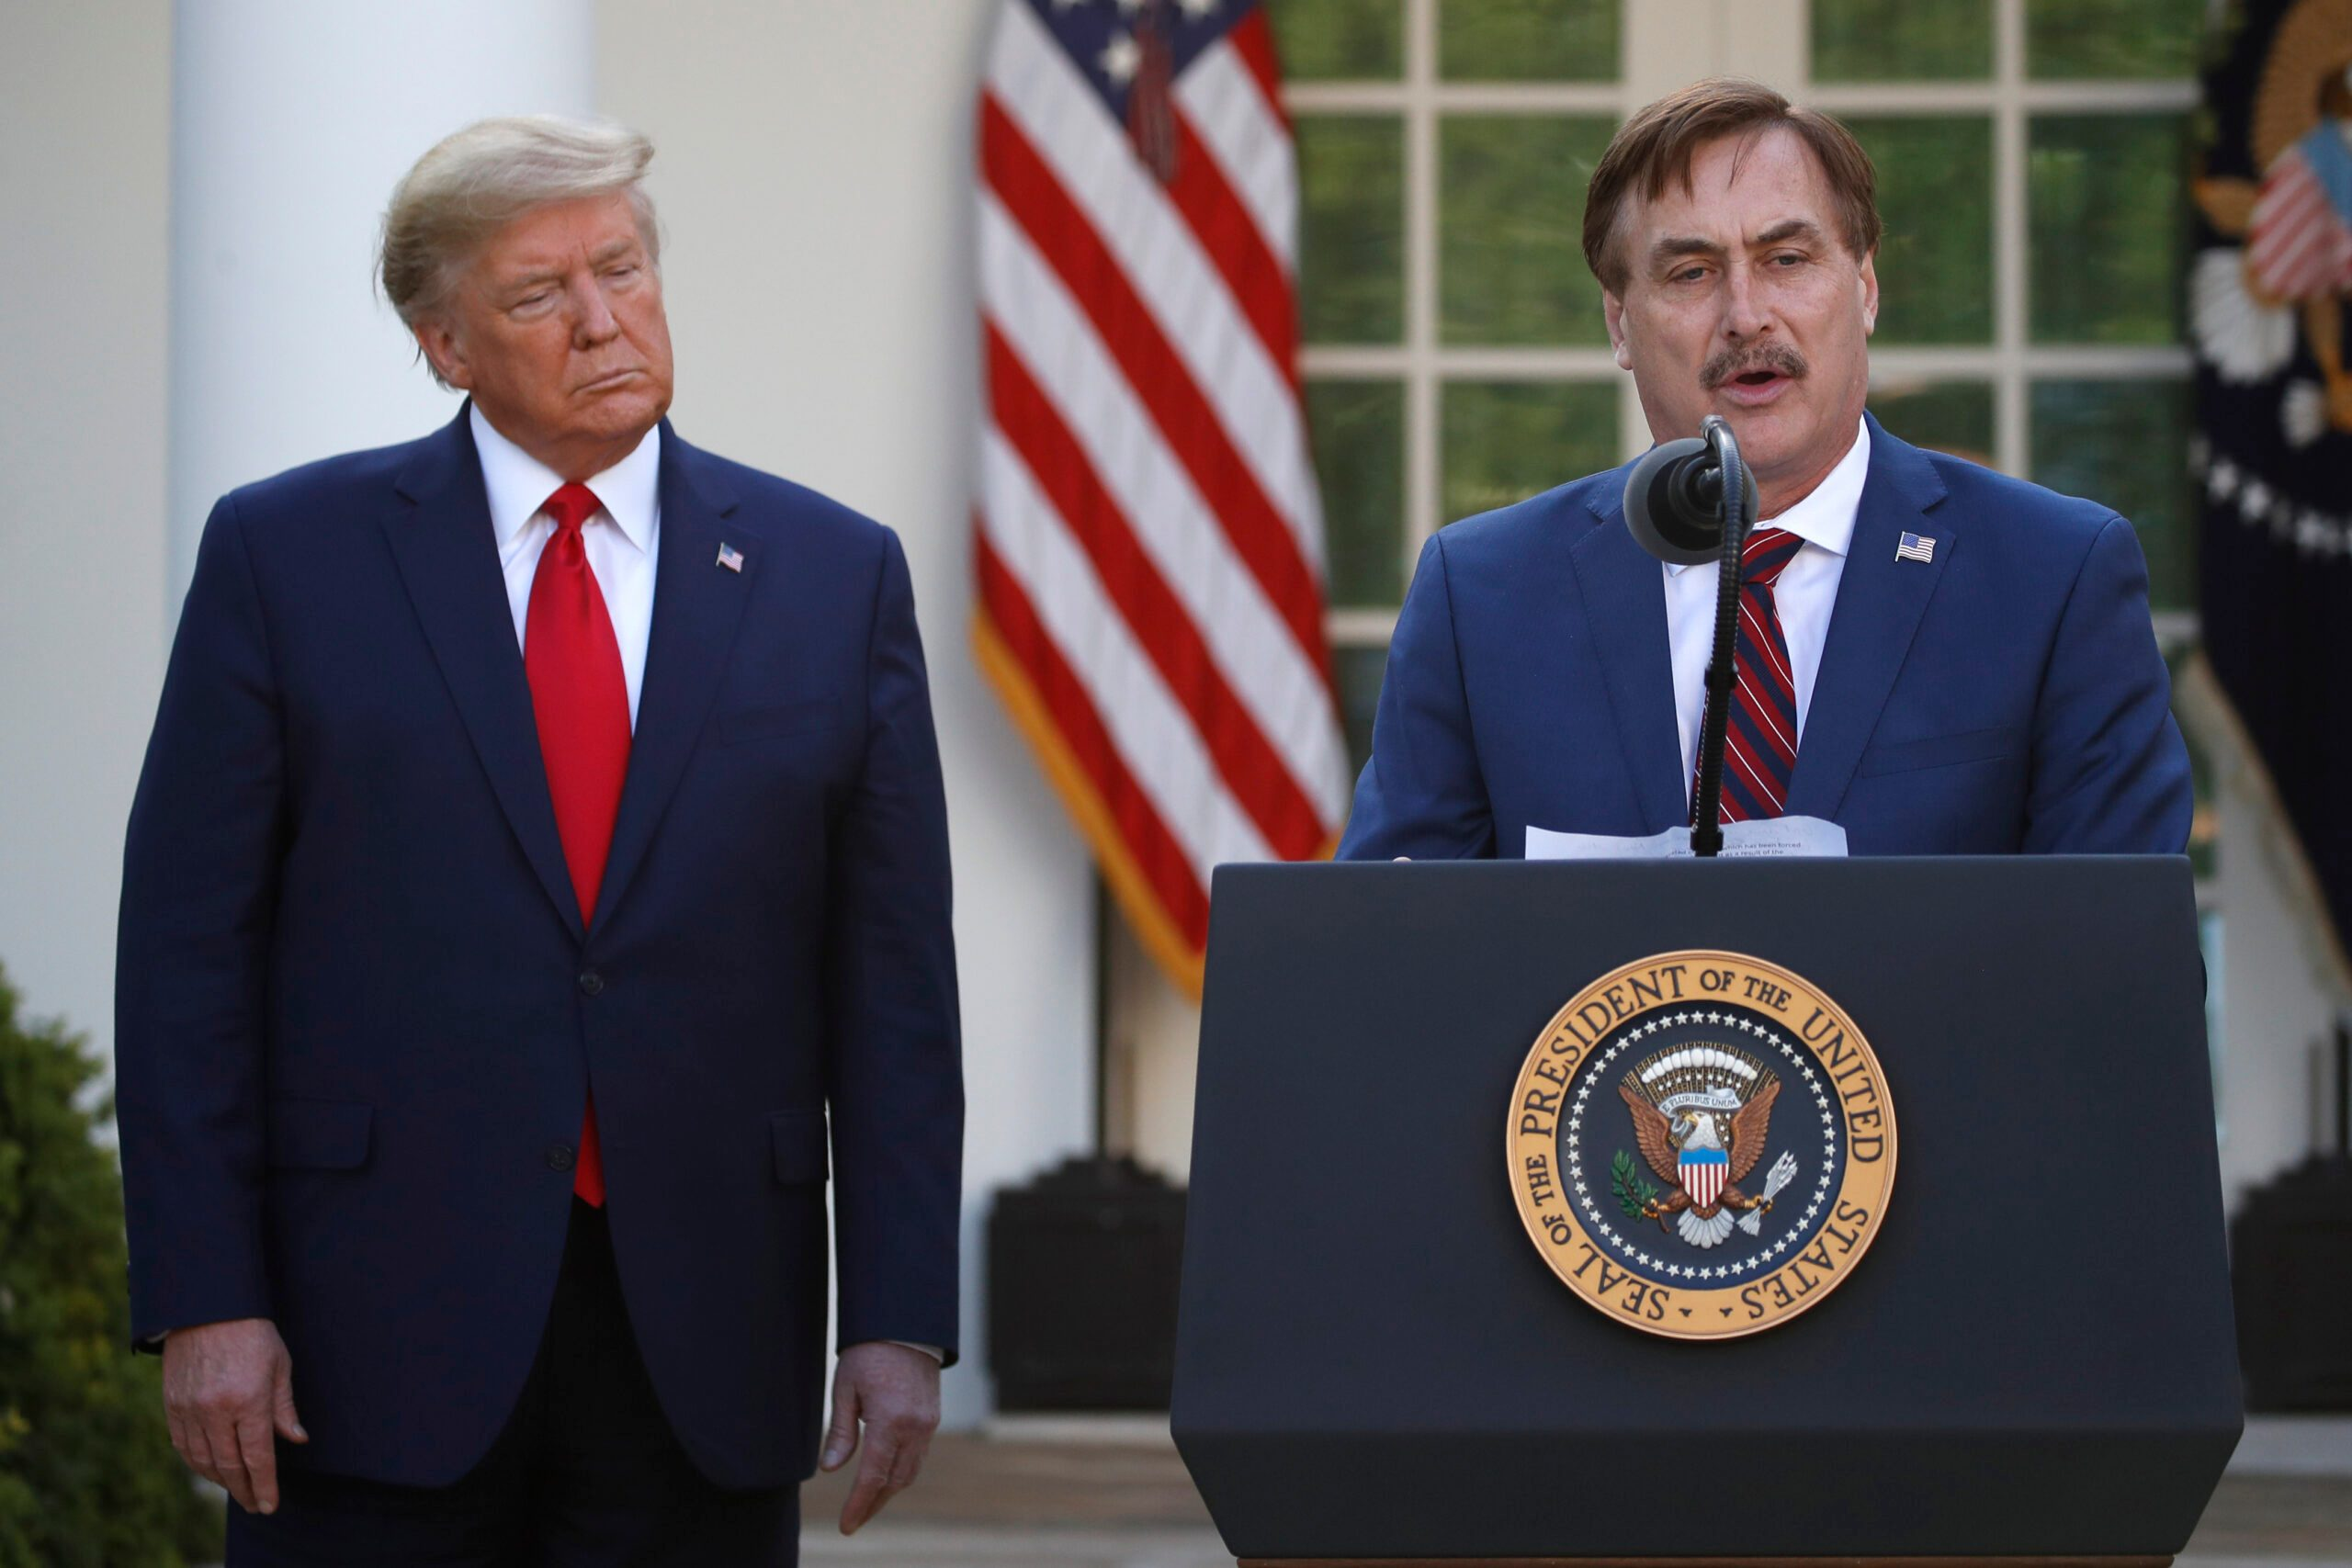 Twitter Permanently Bans My Pillow CEO Mike Lindell - snopes